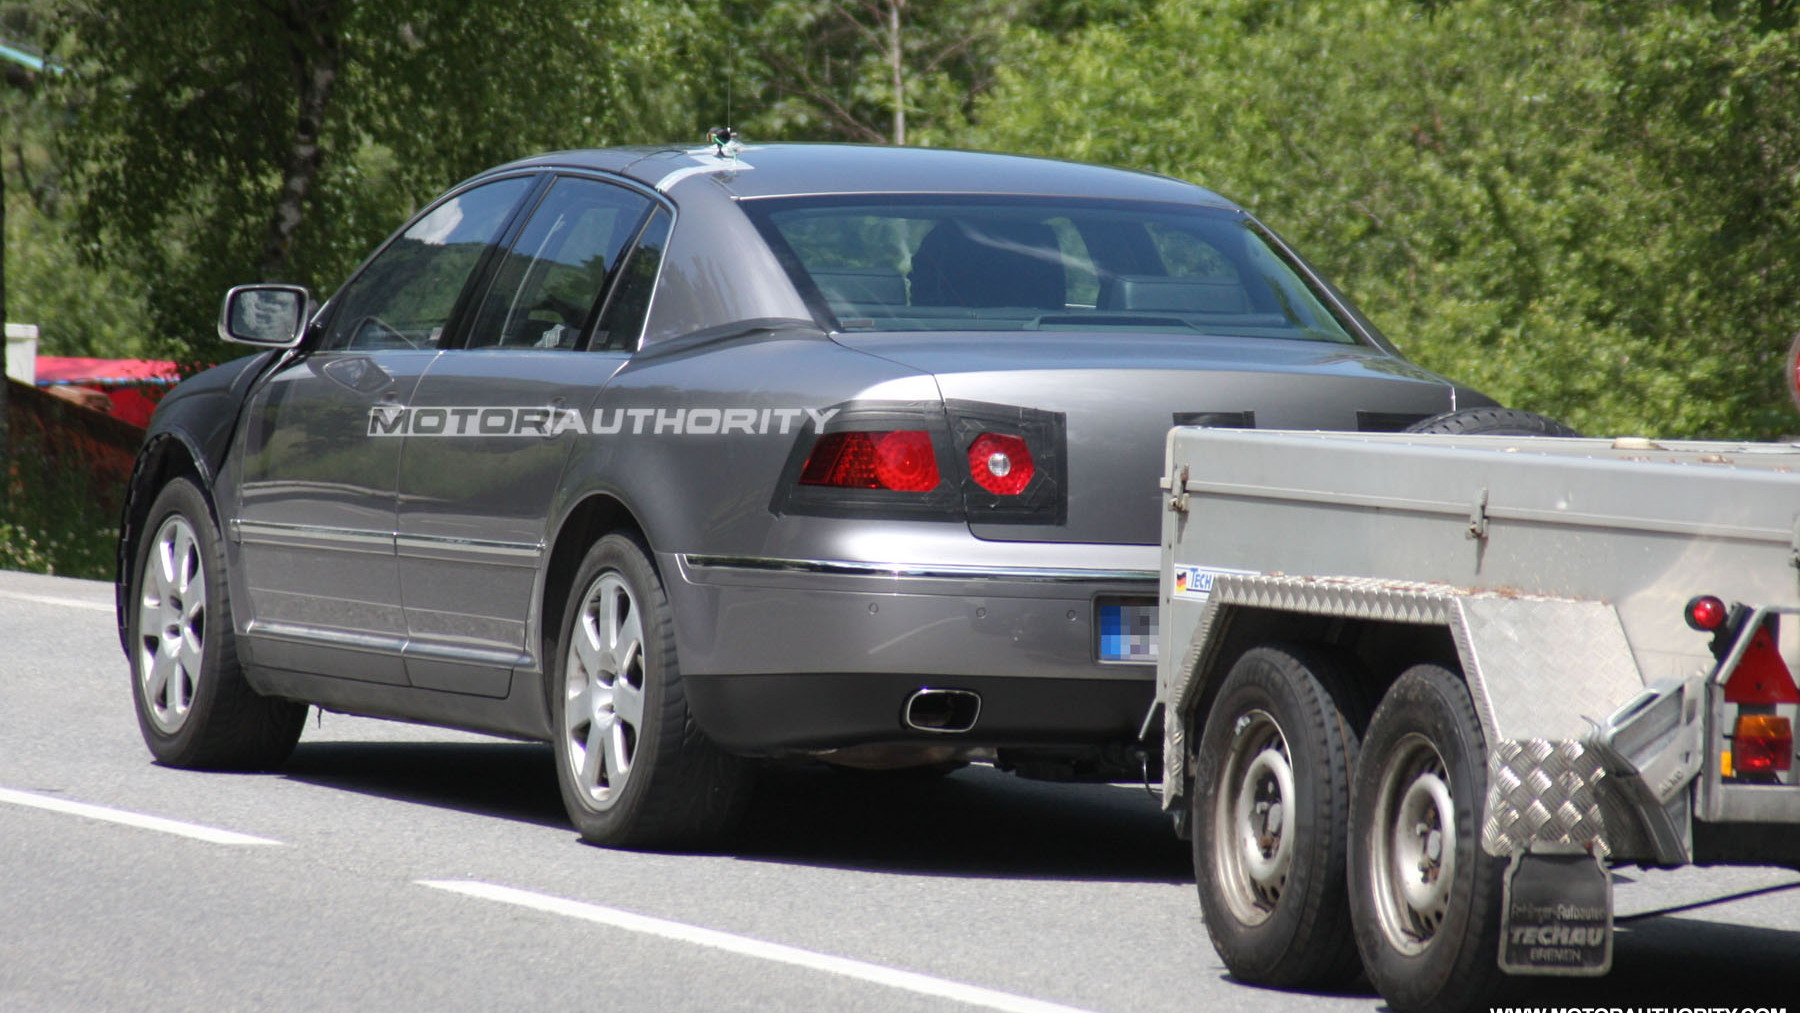 2011 volkswagen phaeton facelift spy shots june 006